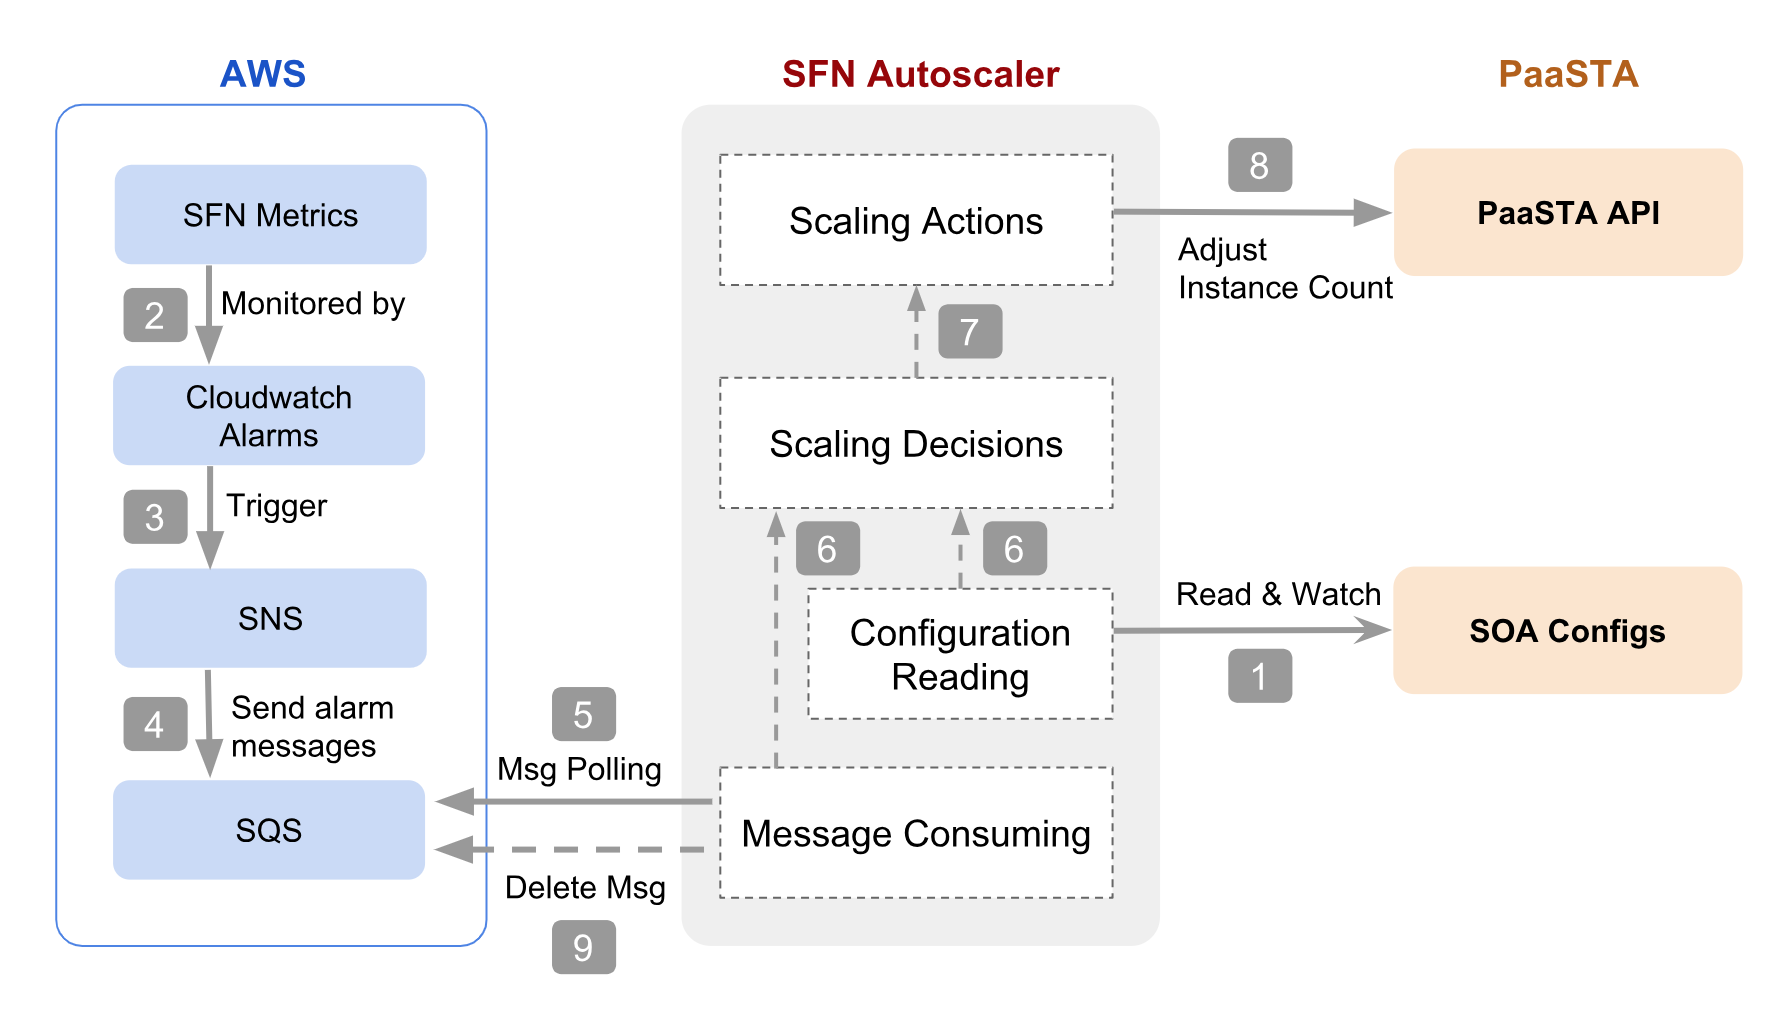 Figure 3: Different components of the Autoscaler and it's interactions    with AWS services and PaaSTA